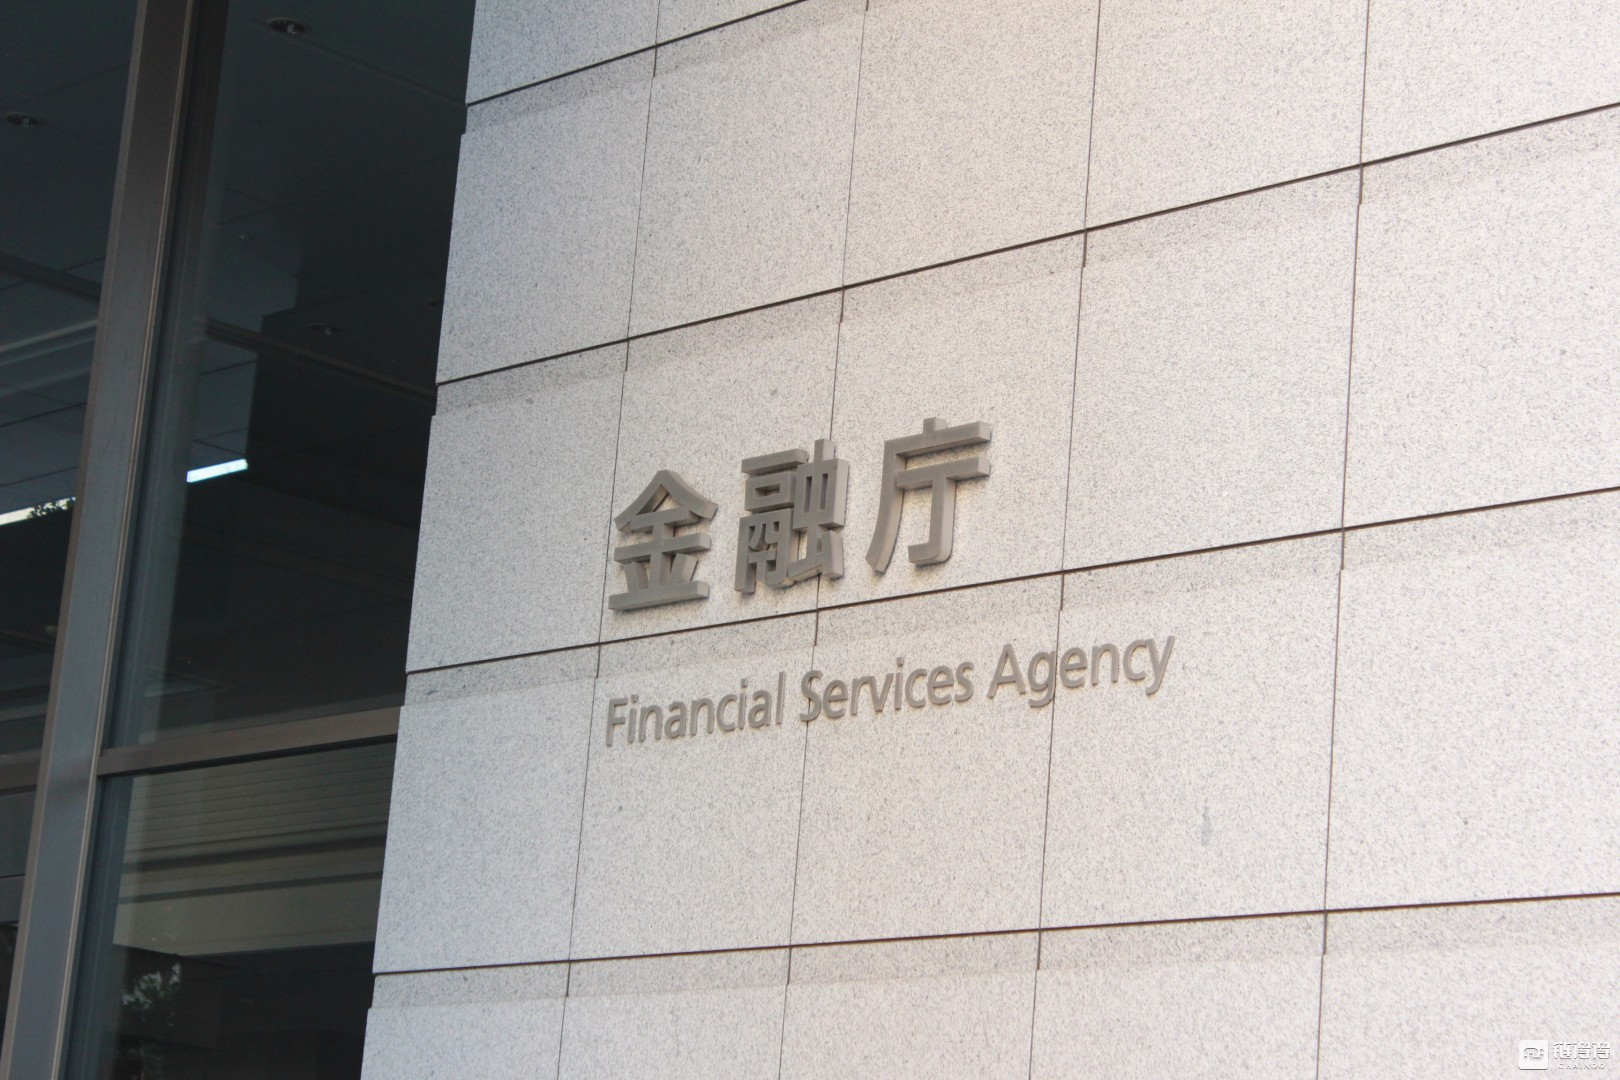 Japan Financial Services Agency (chain received)